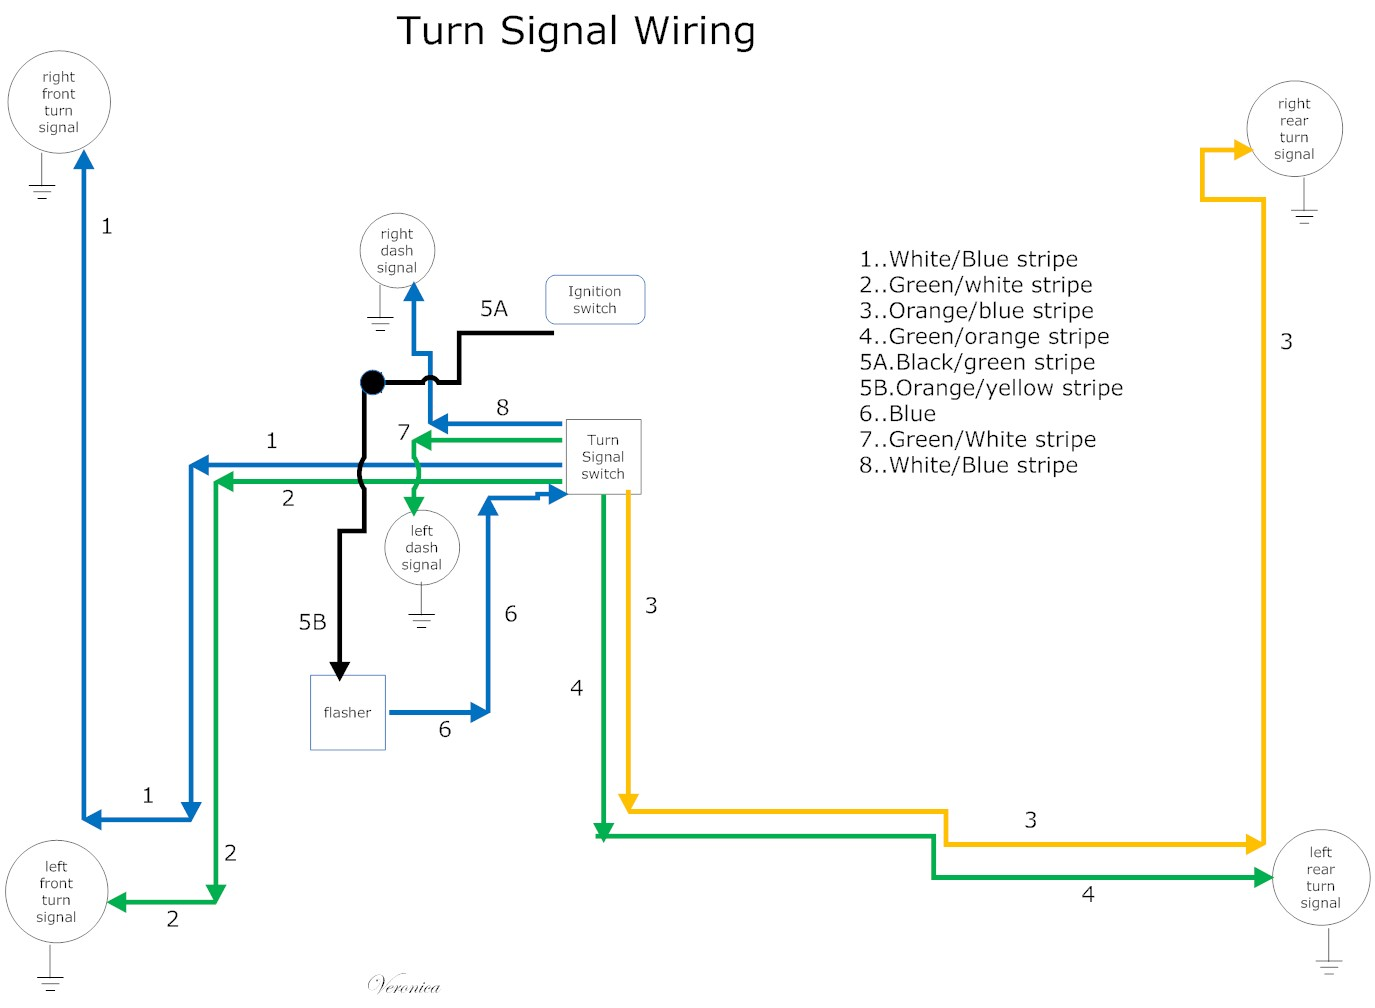 Turn+signal+Wiring wiring diagram 1966 mustang safety switch the wiring diagram Basic Turn Signal Wiring Diagram at n-0.co